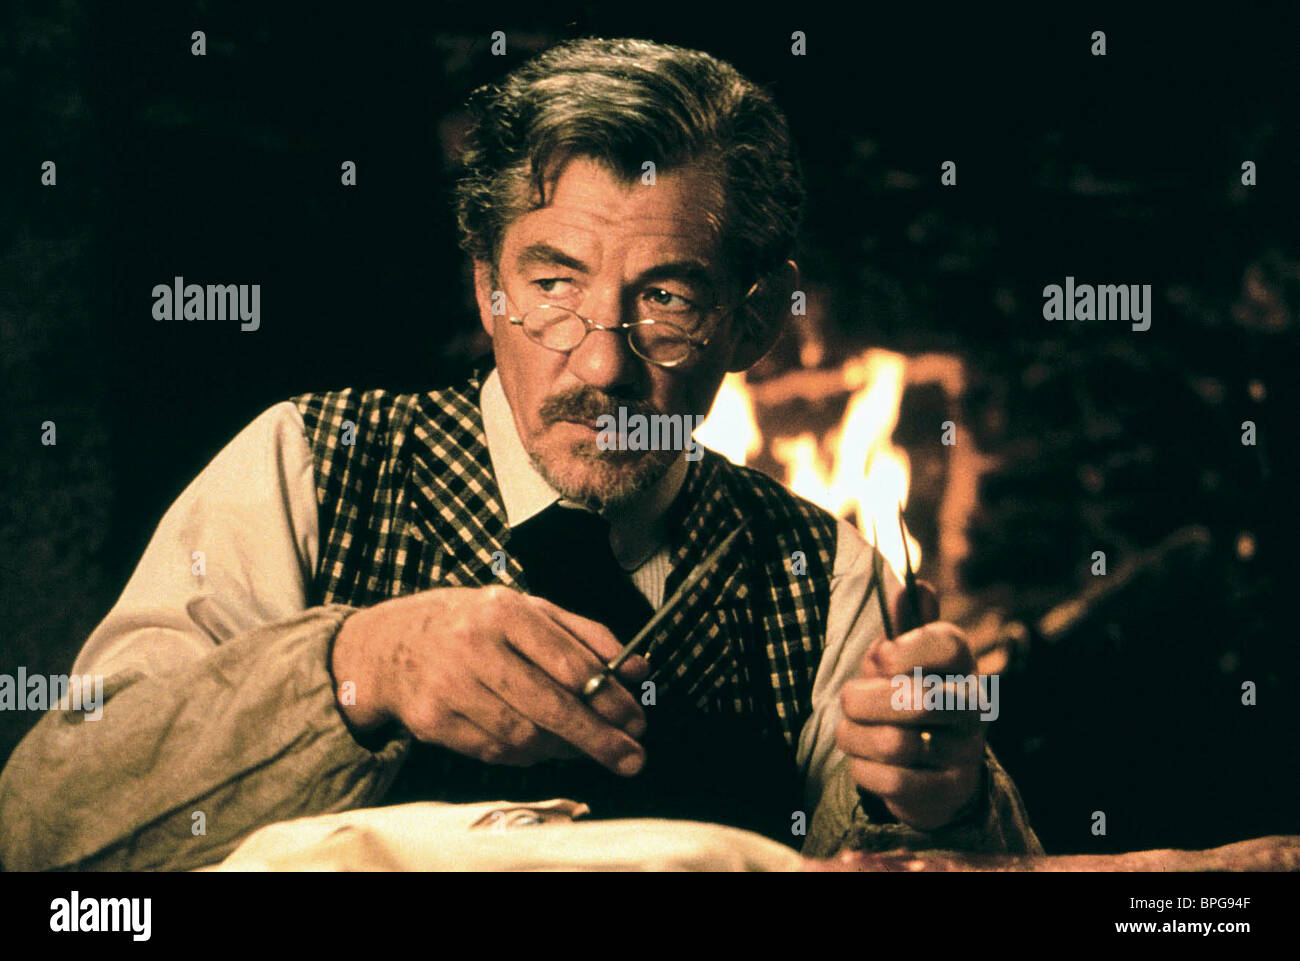 SIR IAN MCKELLEN SWEPT FROM THE SEA (1997) - Stock Image